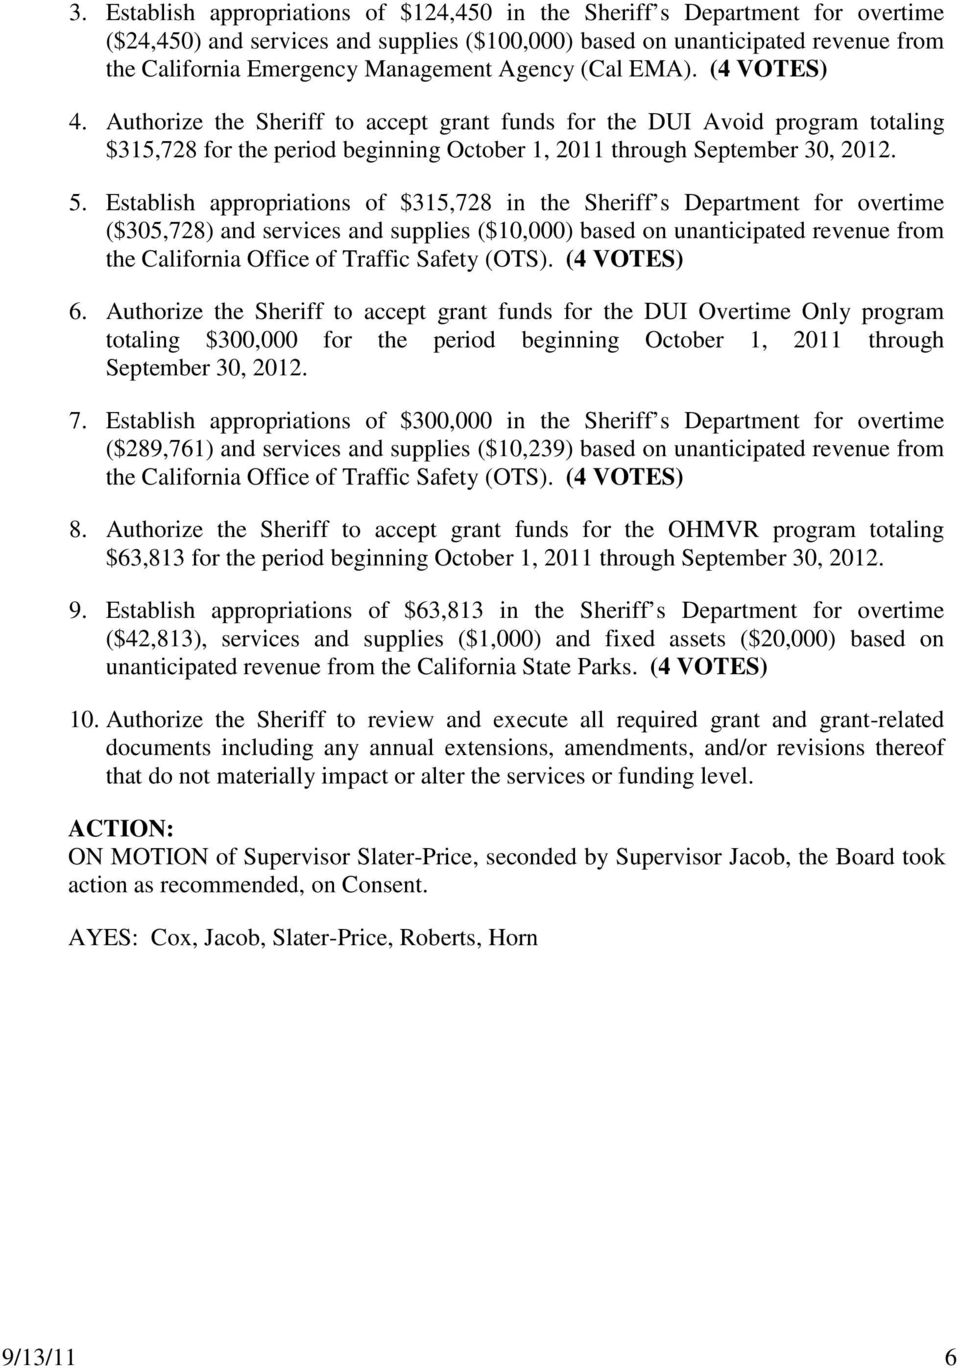 Establish appropriations of $315,728 in the Sheriff s Department for overtime ($305,728) and services and supplies ($10,000) based on unanticipated revenue from the California Office of Traffic